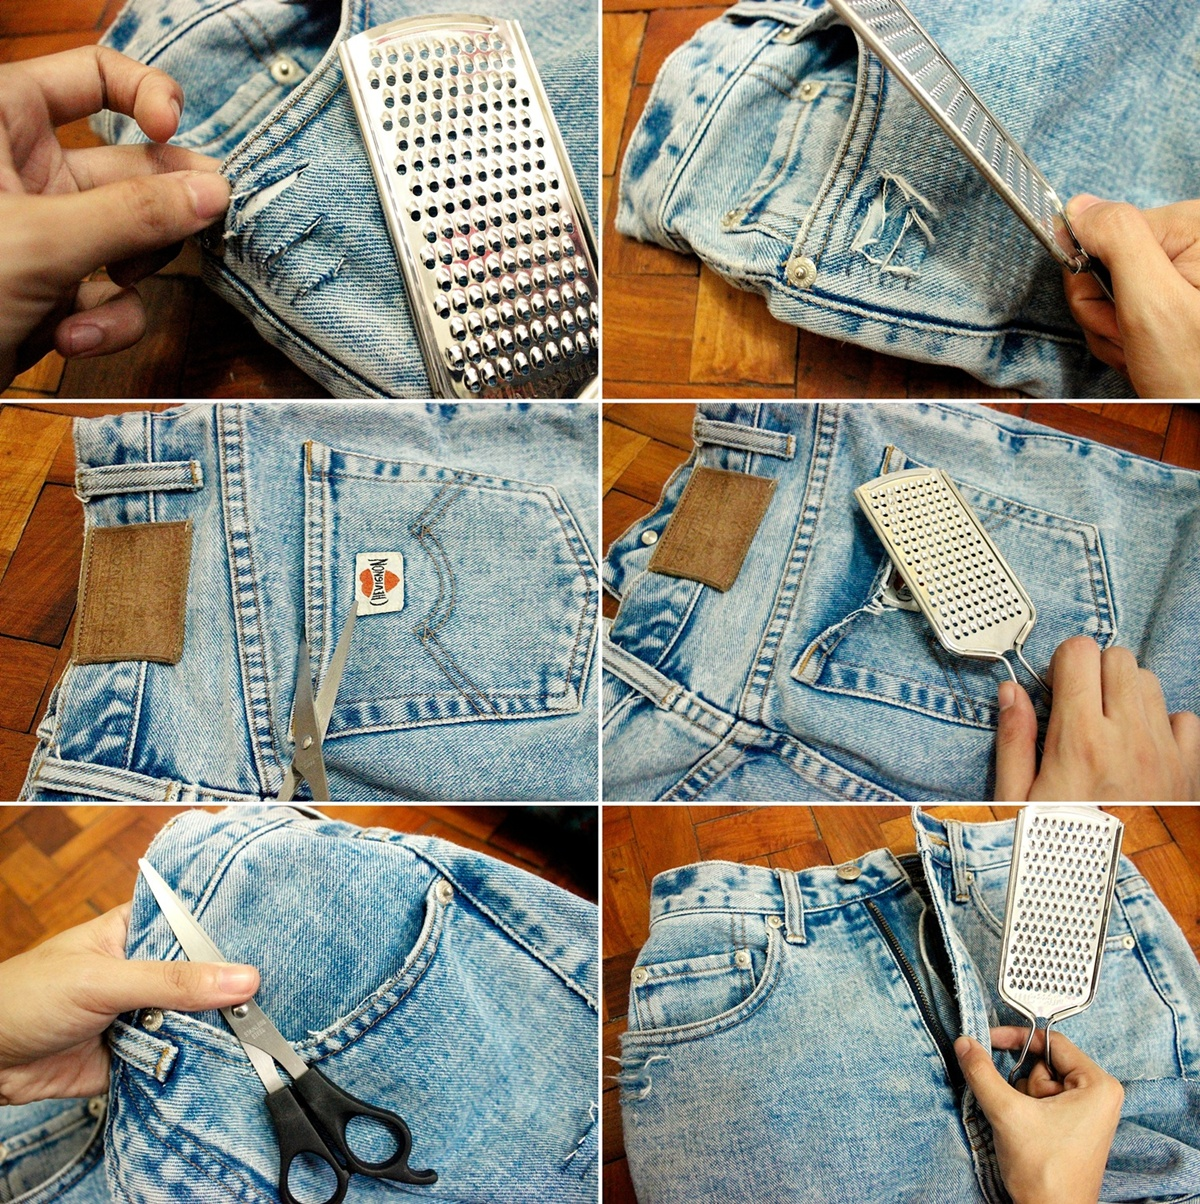 DIY-TUTORIAL-DISTRESSED-RIPPED-BOYFRIEND-JEANS-11 – Lyndsay Picardal